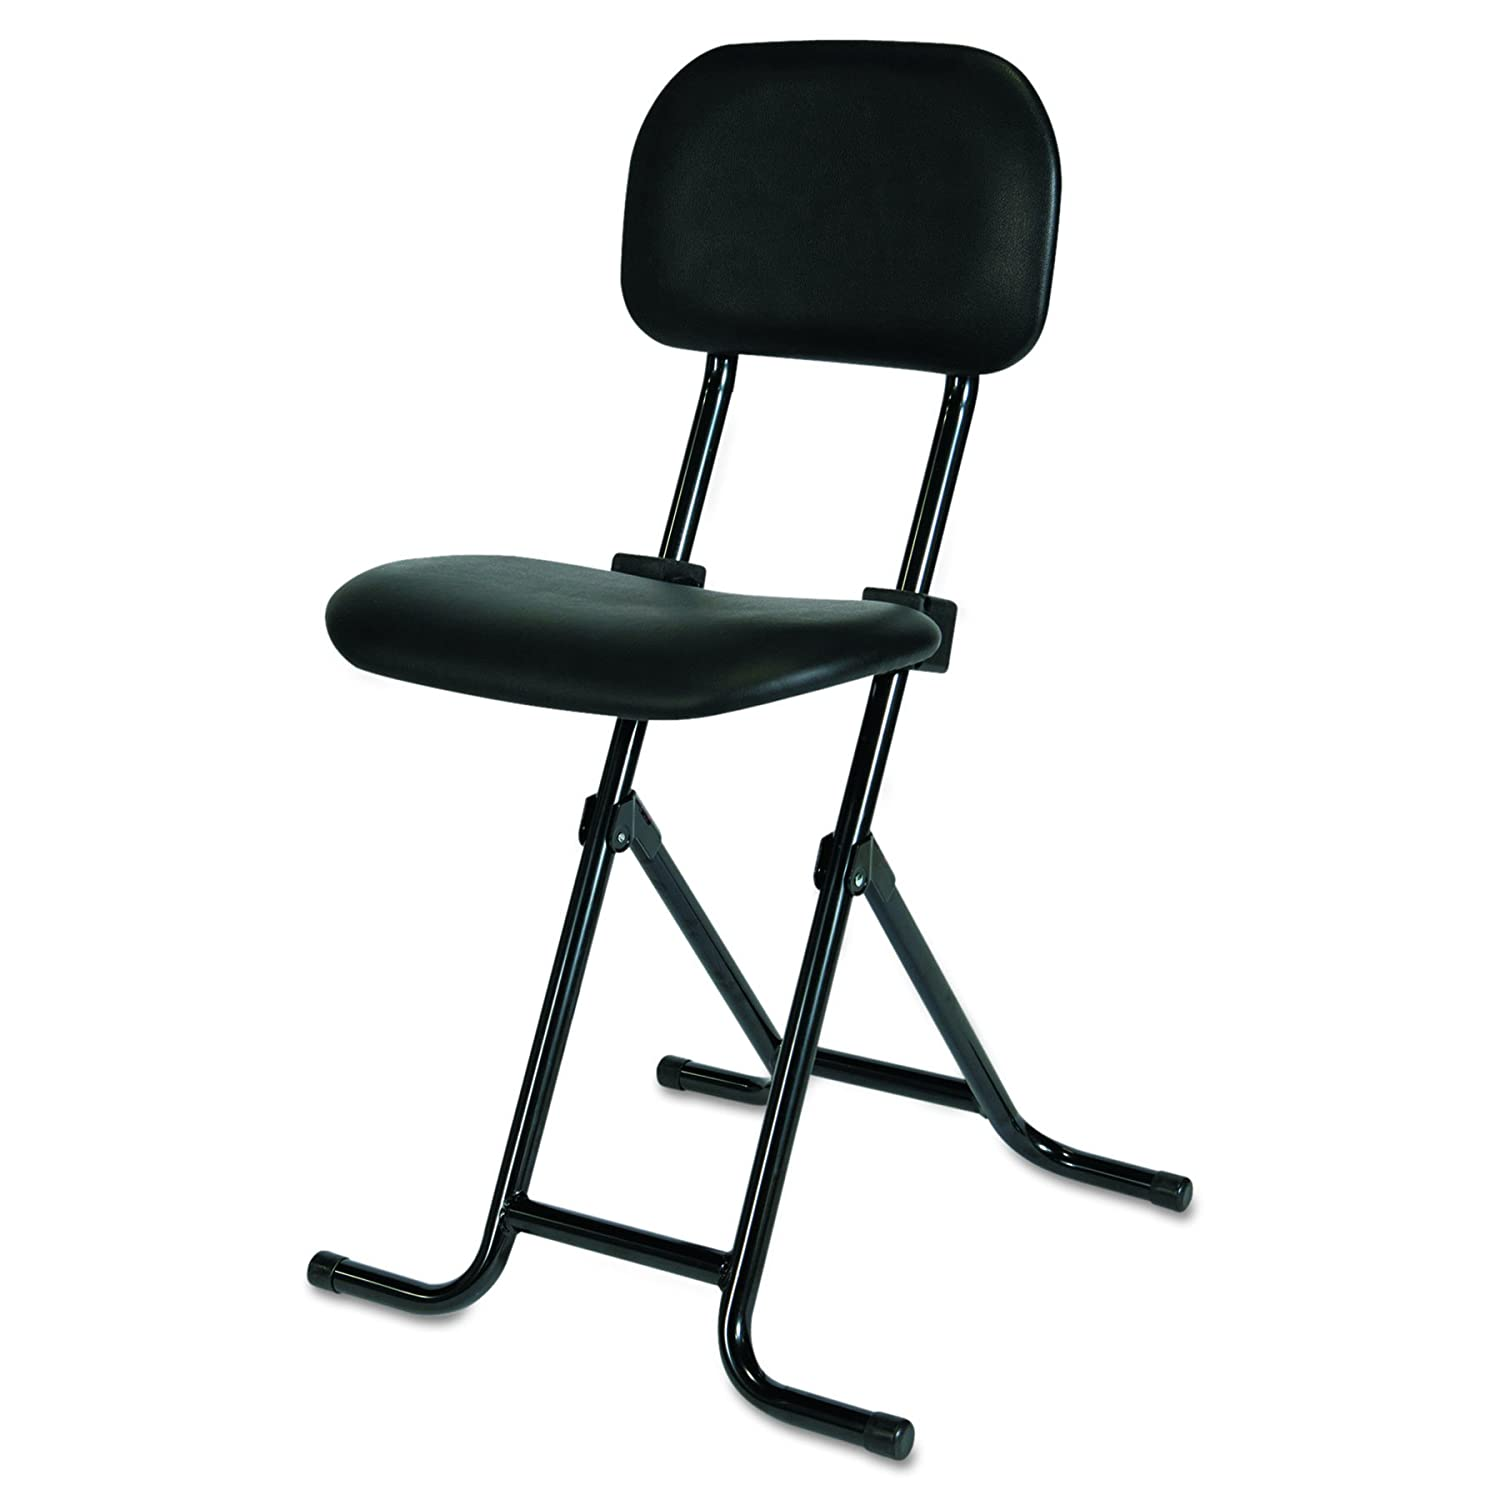 Miraculous Alera Plus Il Series Height Adjustable Folding Stool Black Unemploymentrelief Wooden Chair Designs For Living Room Unemploymentrelieforg